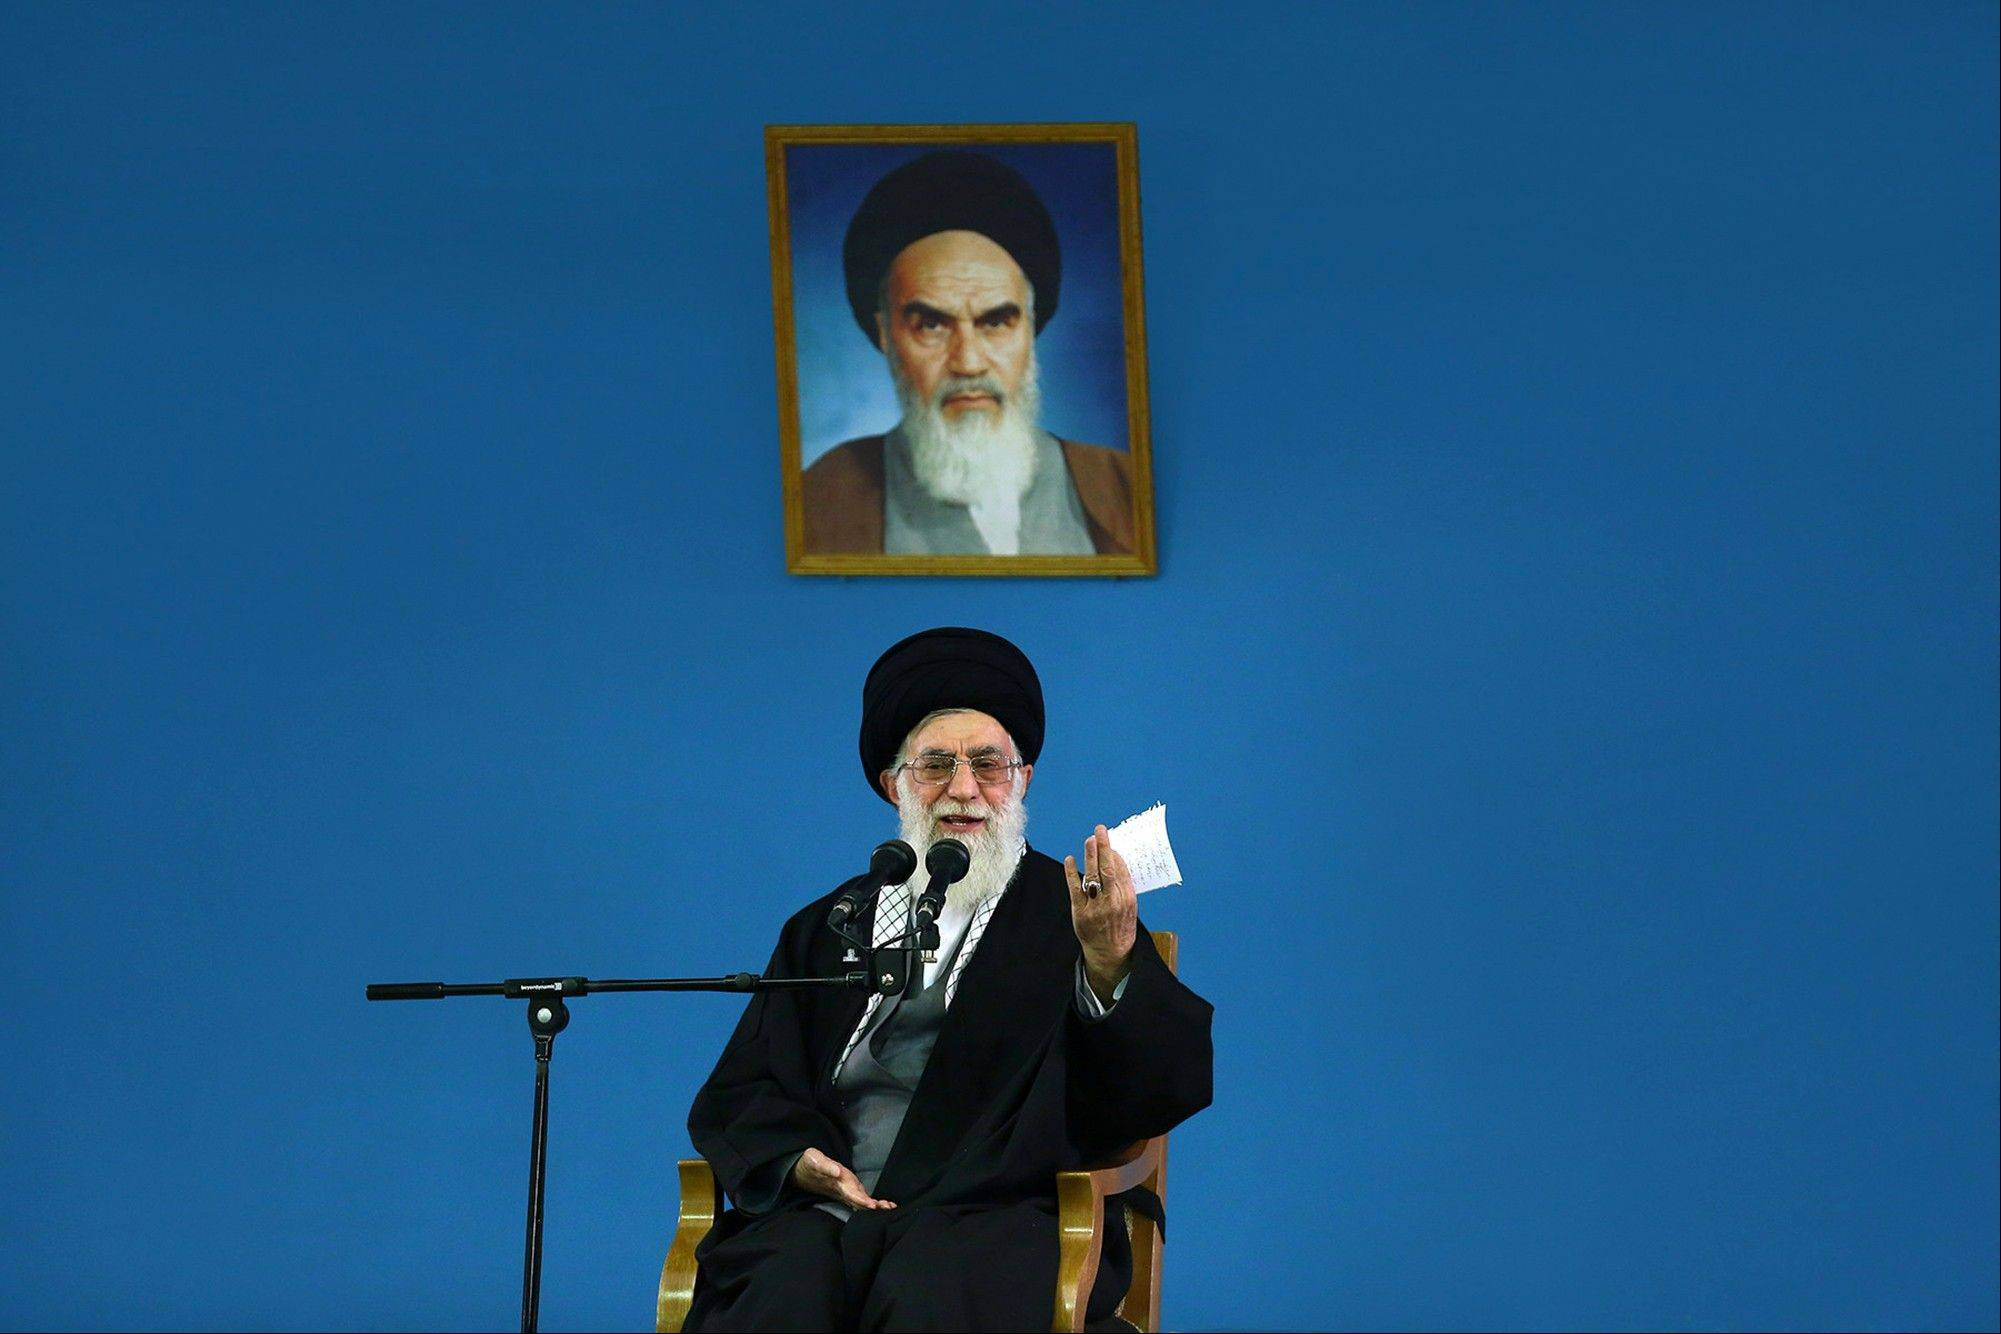 Ayatollah Ali Khamenei makes a speech to a group of air force members Saturday in Tehran, Iran.